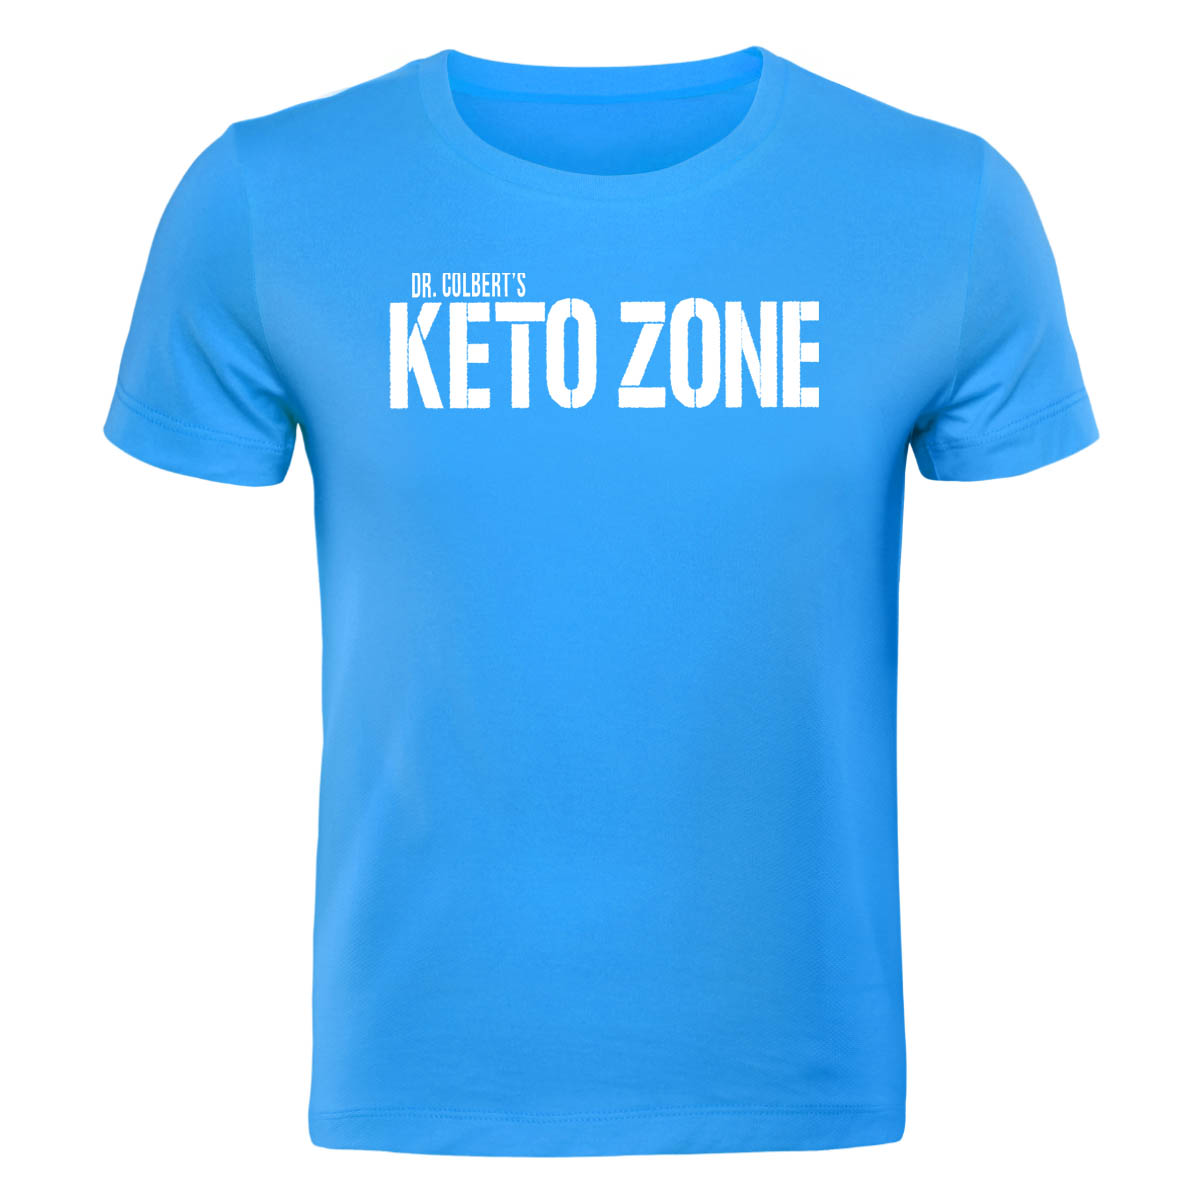 New ! Keto Shirts For Women (Teal)